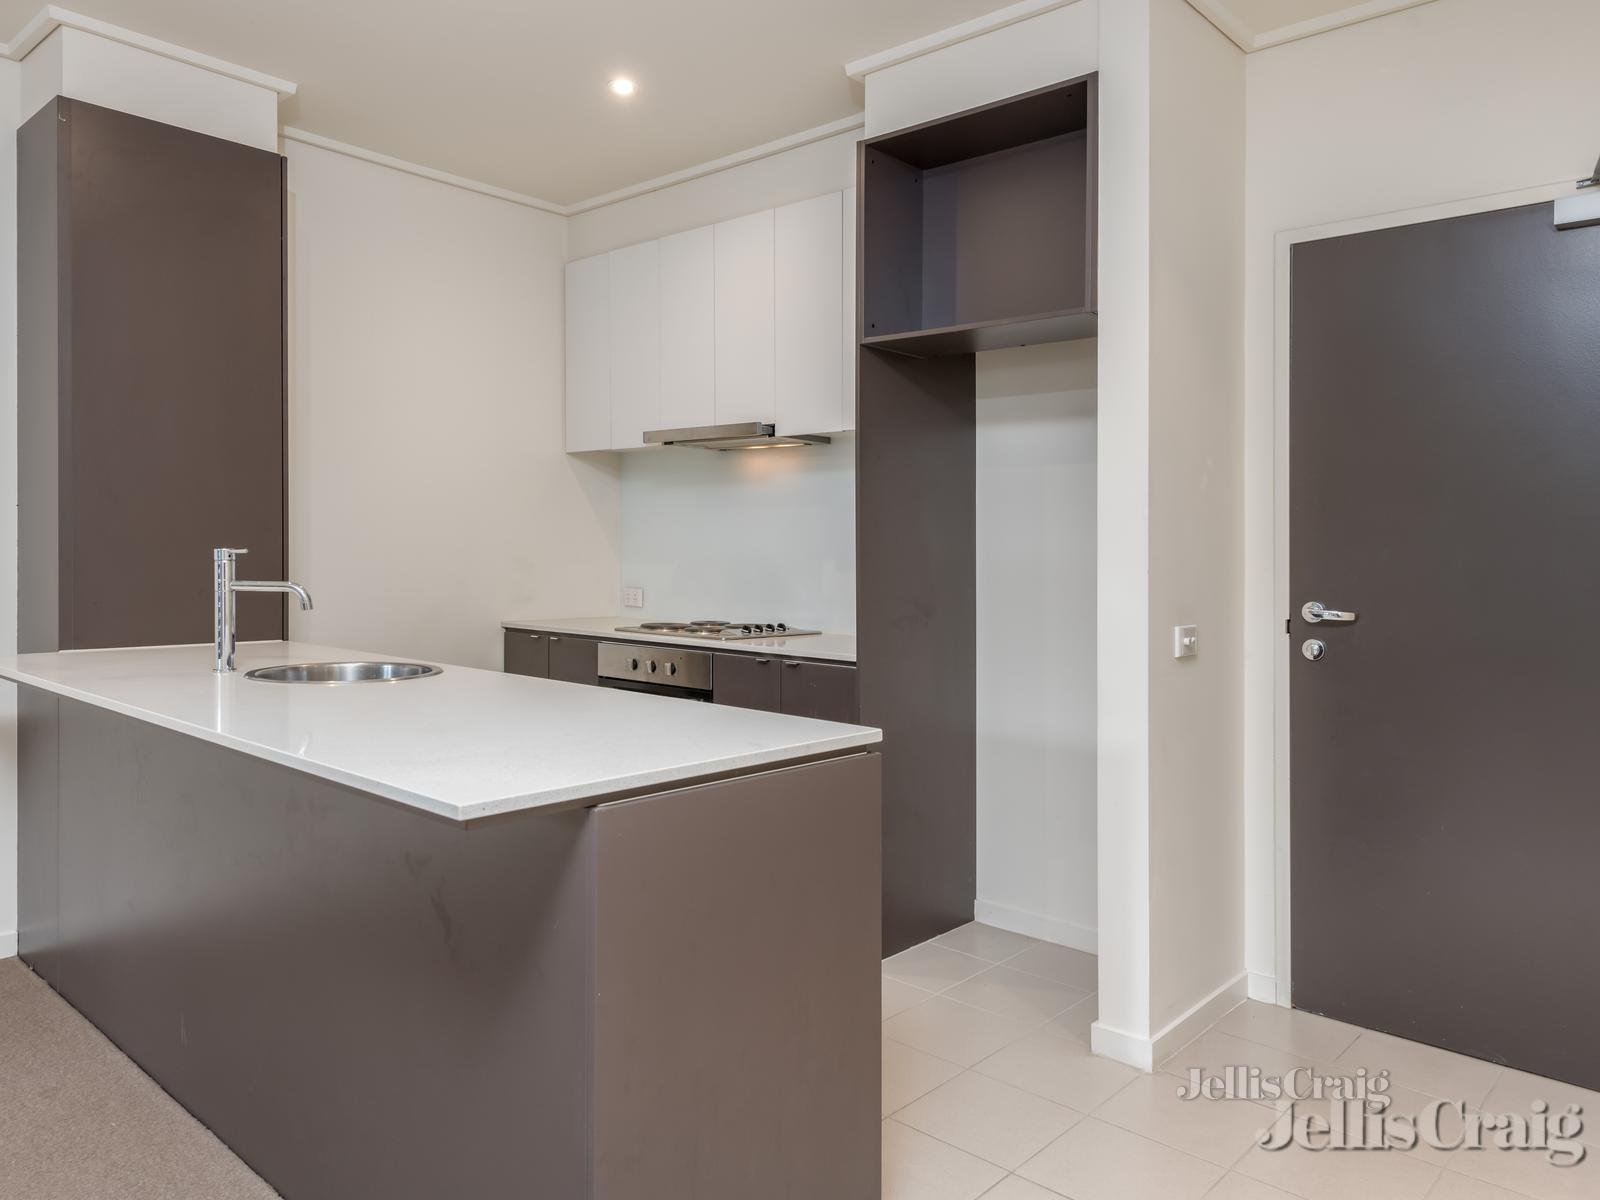 3/280 Blackburn Road, Glen Waverley    - Image 1